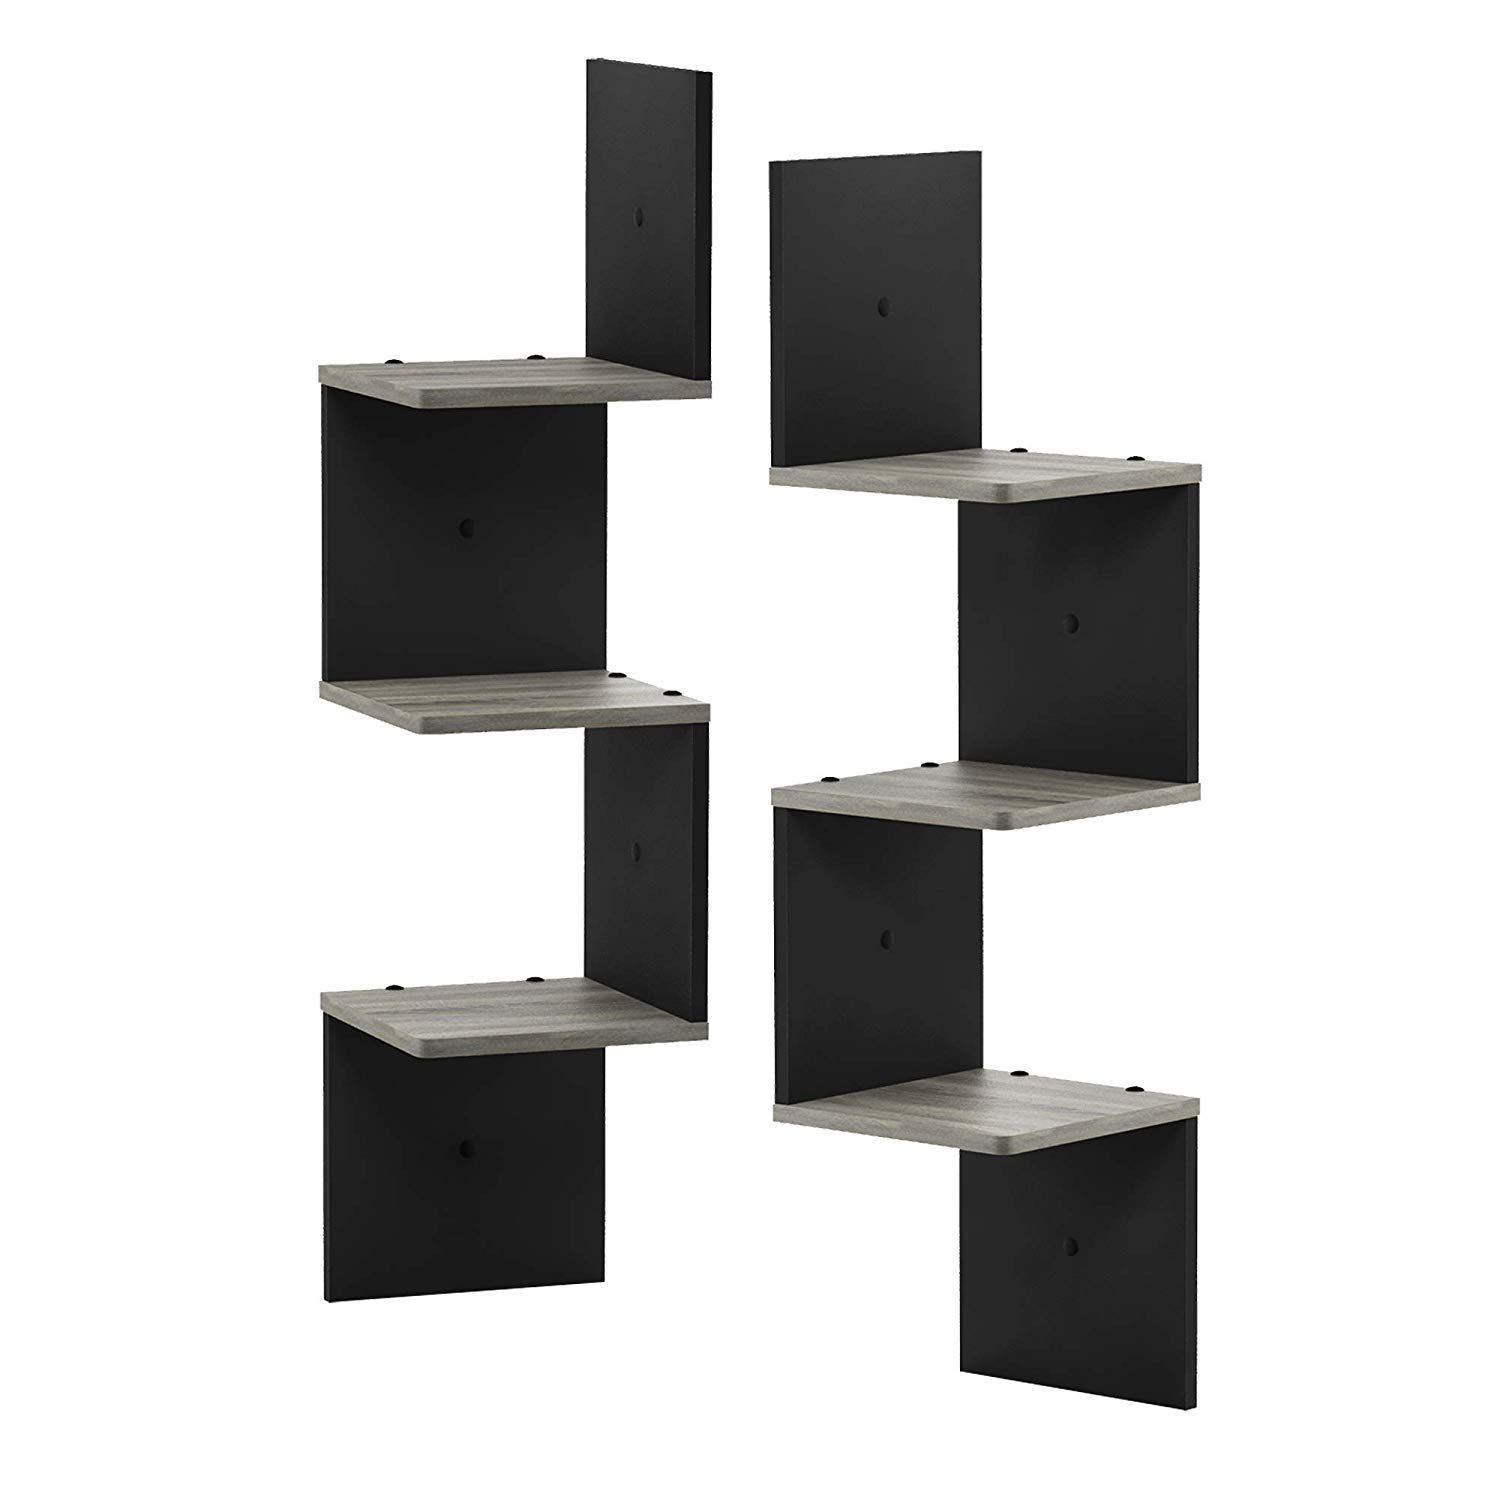 furinno tier set mount floating lyrqpl grey shelf with drawer corner square wall french oak black kitchen dining tall utility ikea mudroom ideas storage rustic fireplace audio